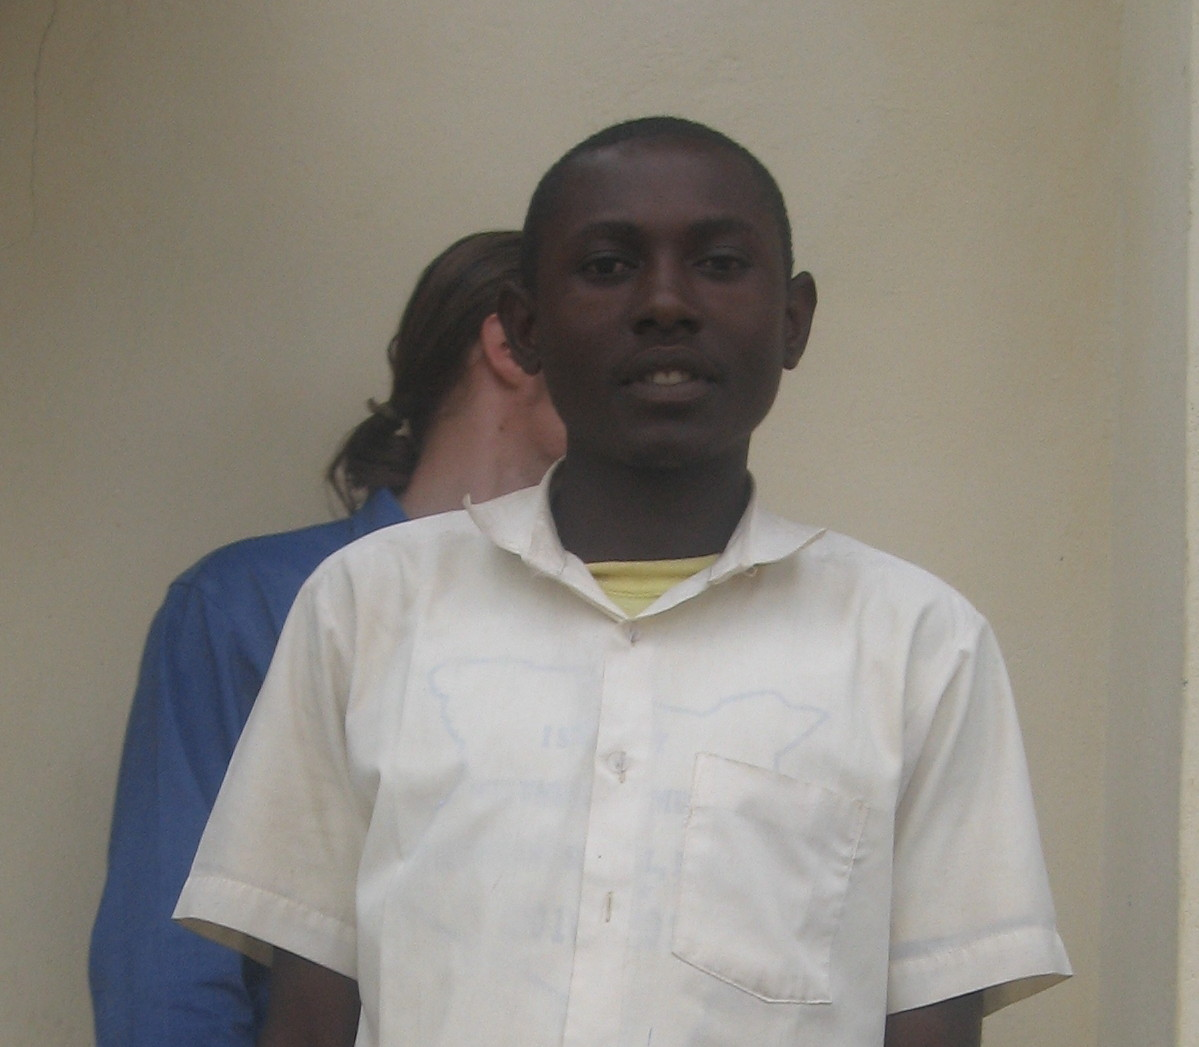 Mwova Mulimi, Student at Mulundi-Kwa Muema Secondary School in Kenya